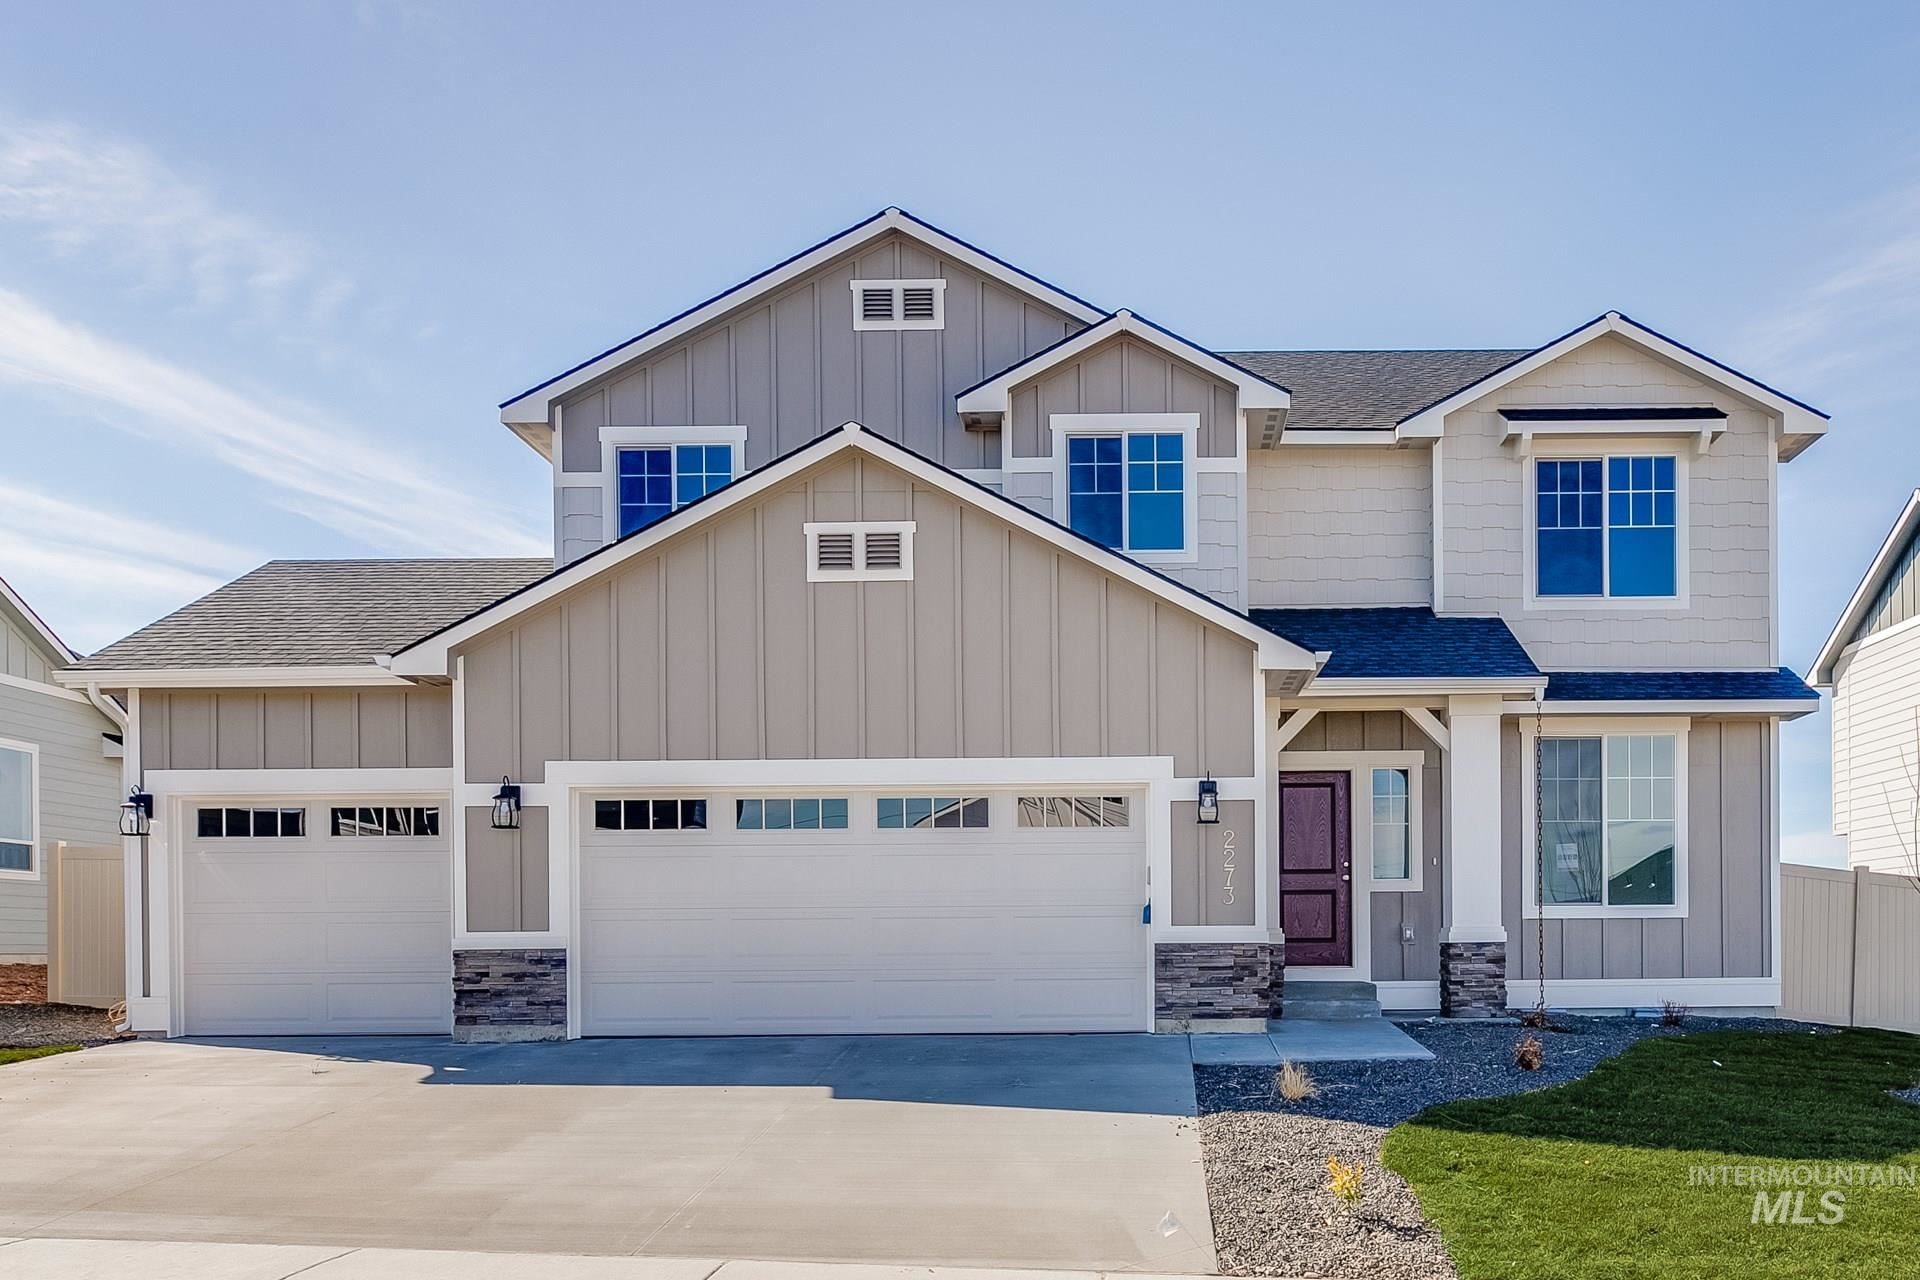 797 Grizzly Dr., Twin Falls, ID 83301 - MLS#: 98766729